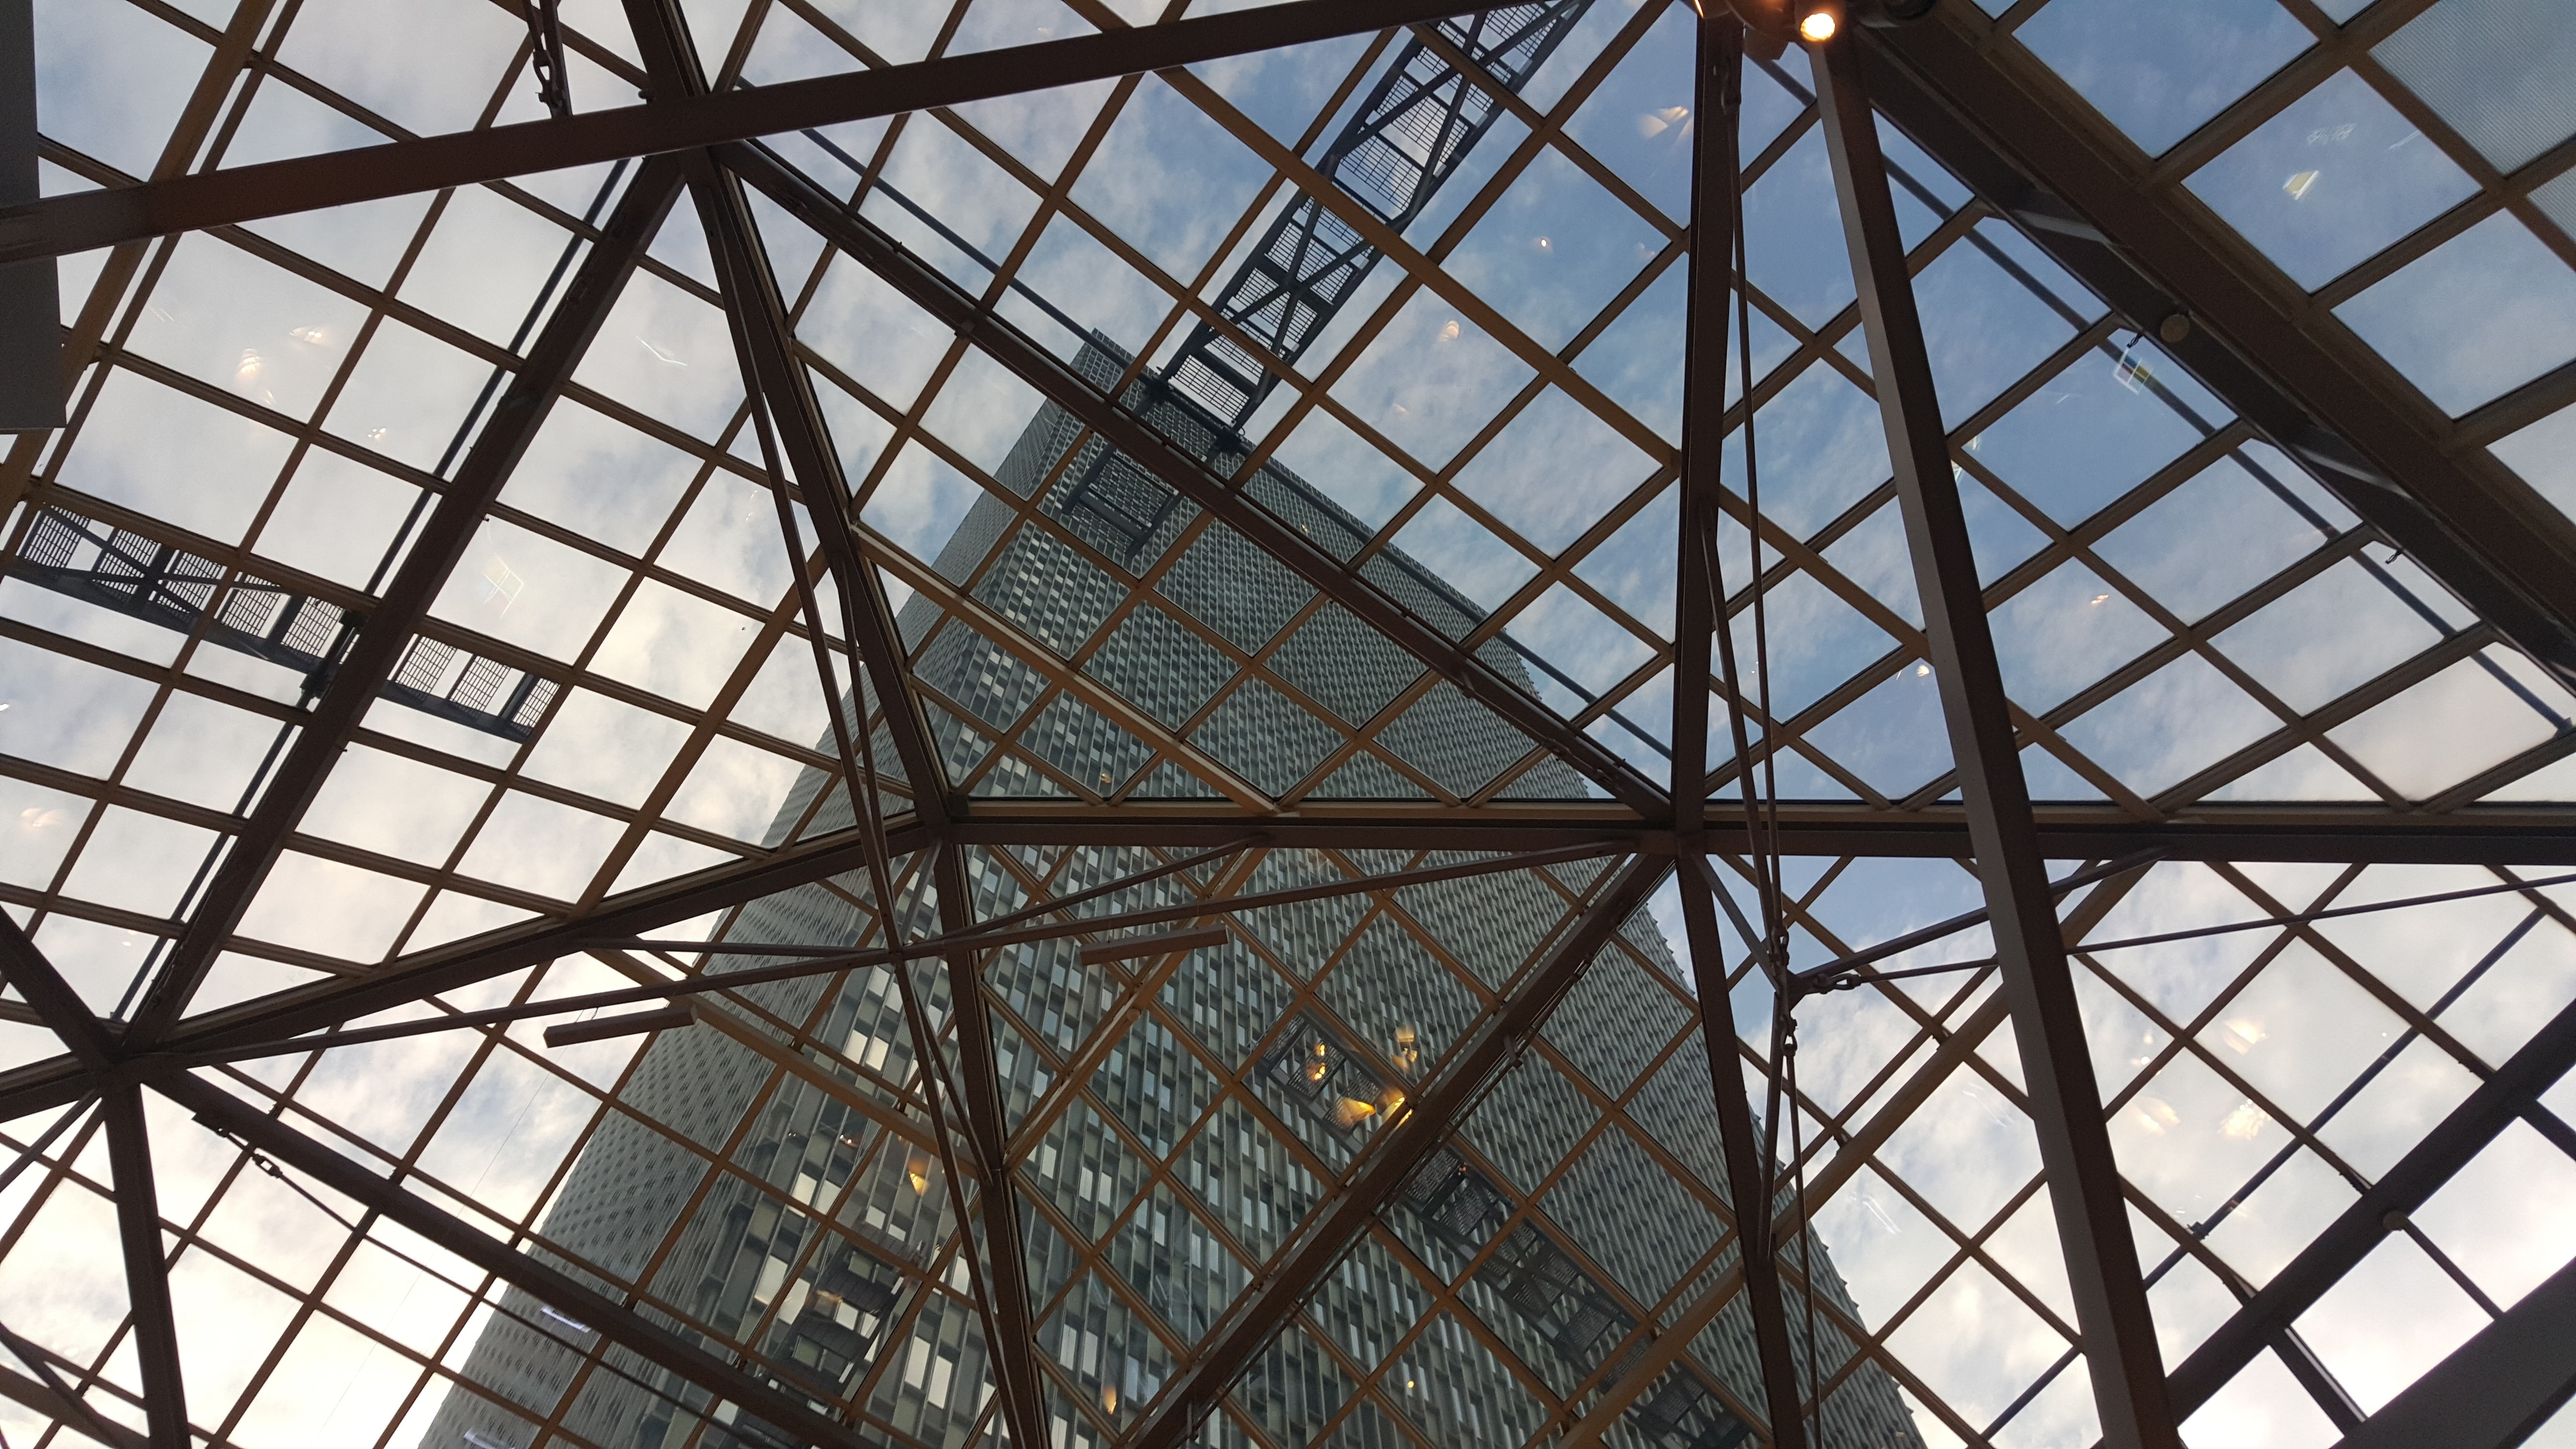 Steel support beams in a glass ceiling with a view on a high-rise outside